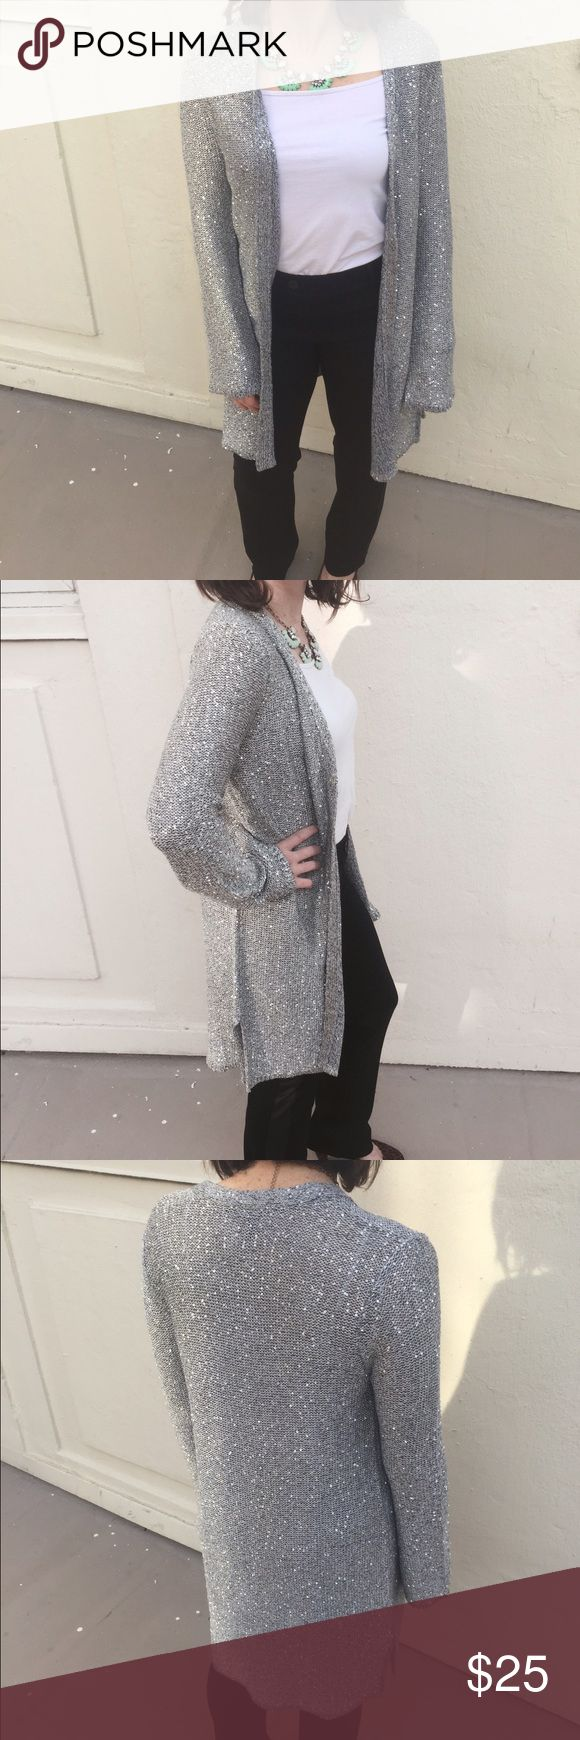 Long Silver Sequin Cardigan Long sleeve, knee length, silver cardigan with micro sequins interwoven in the top. White House Black Market Sweaters Cardigans